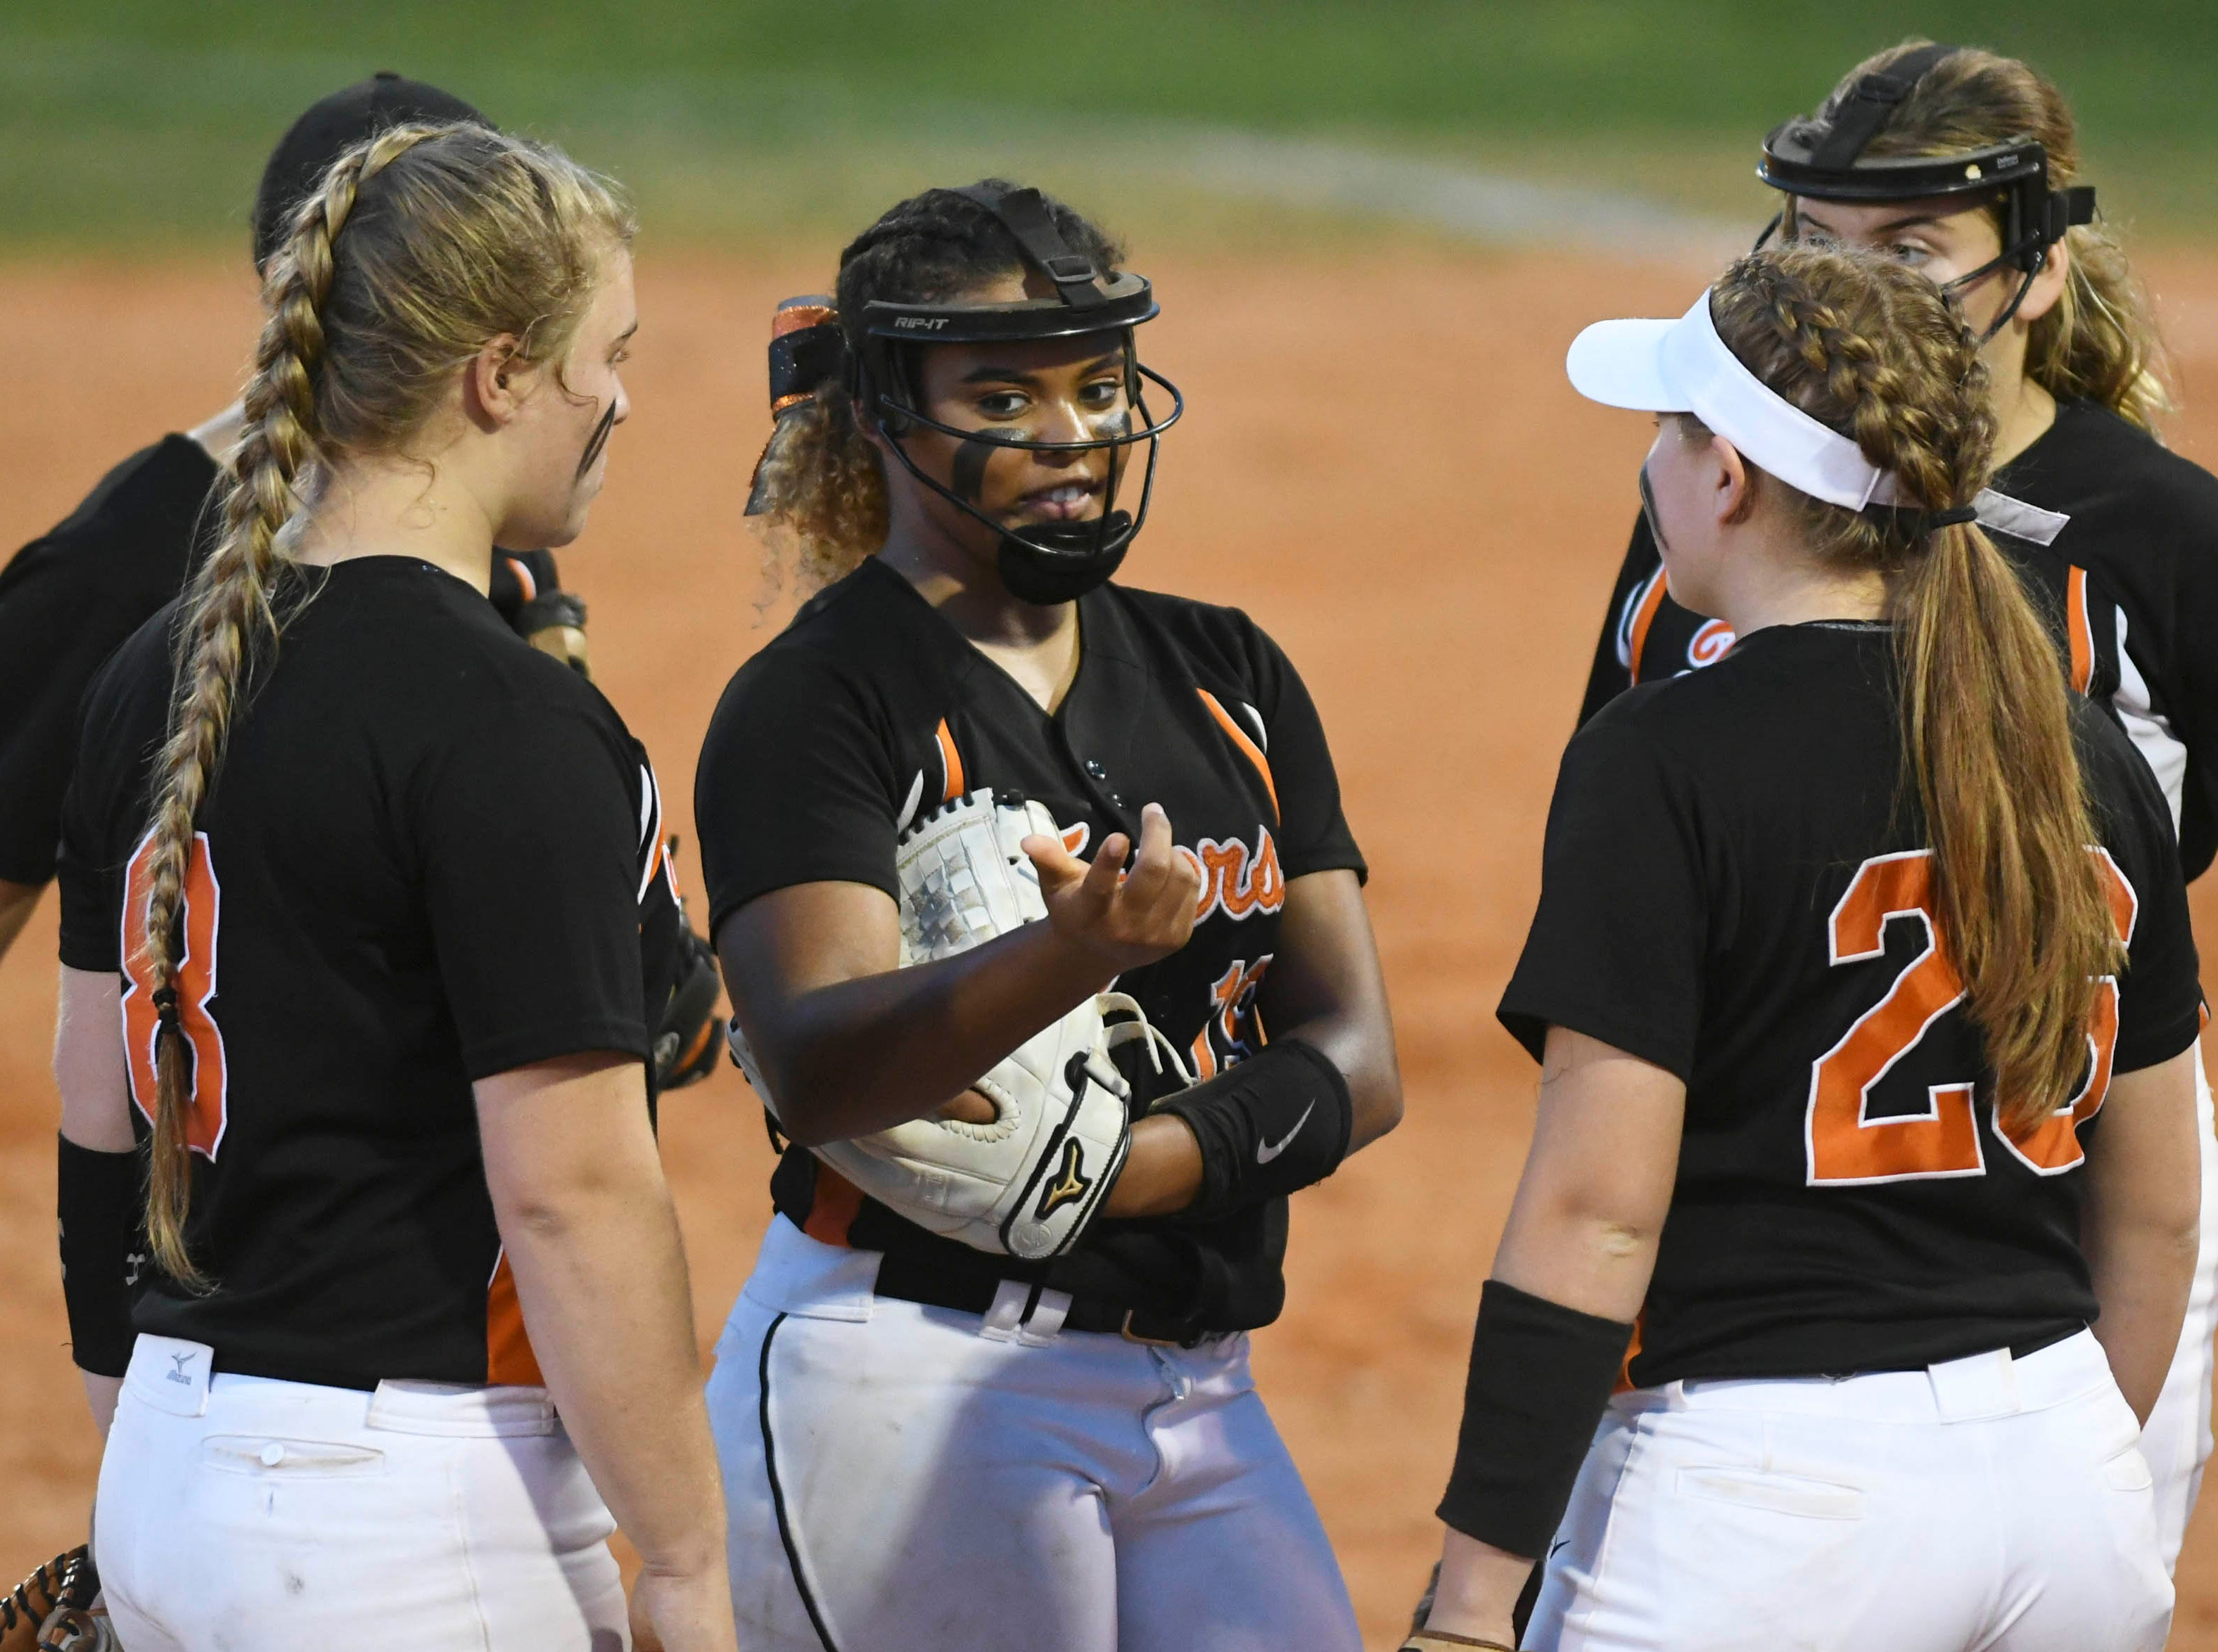 Cocoa players have a conference at the pitchers mound during Friday's game.